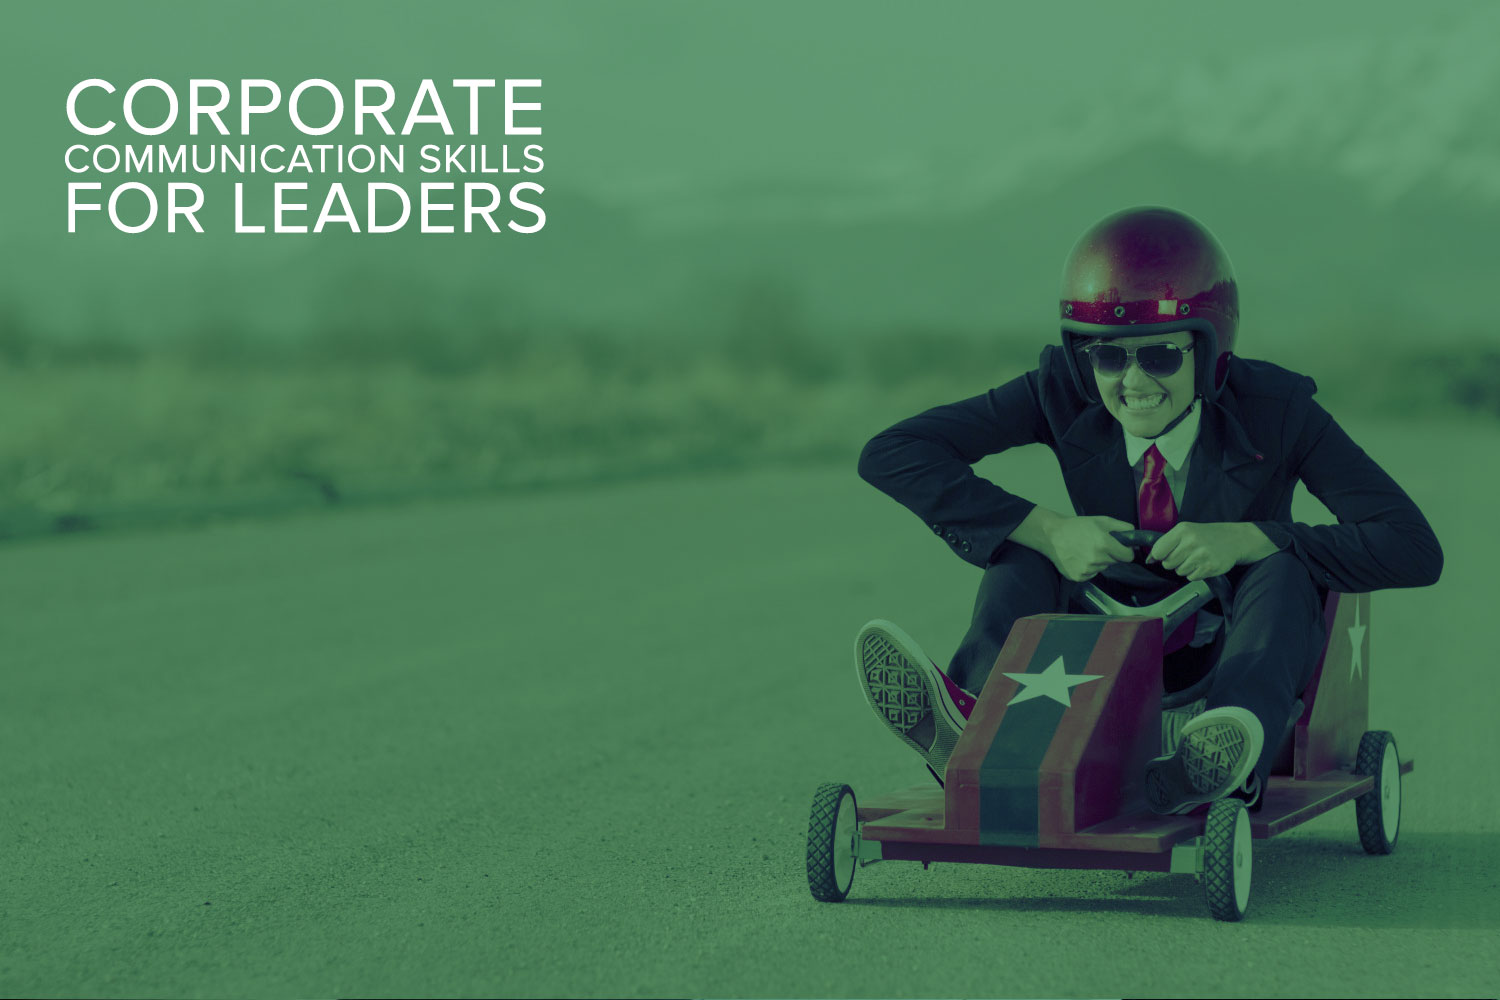 Corporate Communication Skills for Leaders